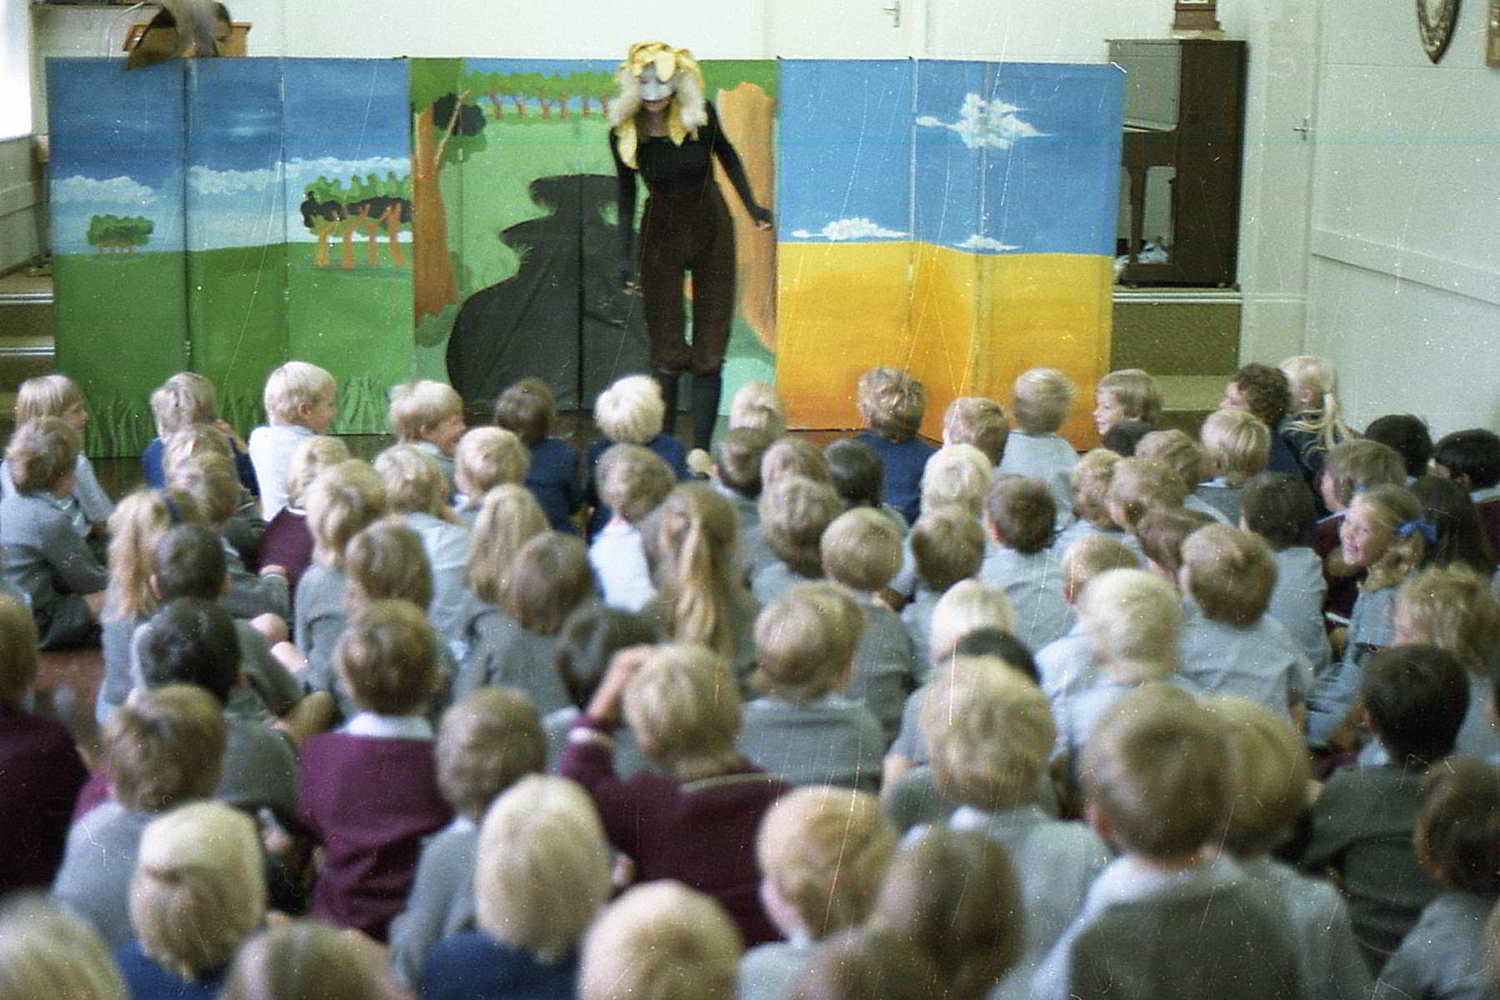 The Bunyip of Berkeley's Creek, Handspan Theatre Actor masked actor in front of stage flats painted with simple landscape, speaking to large group of children in classroom